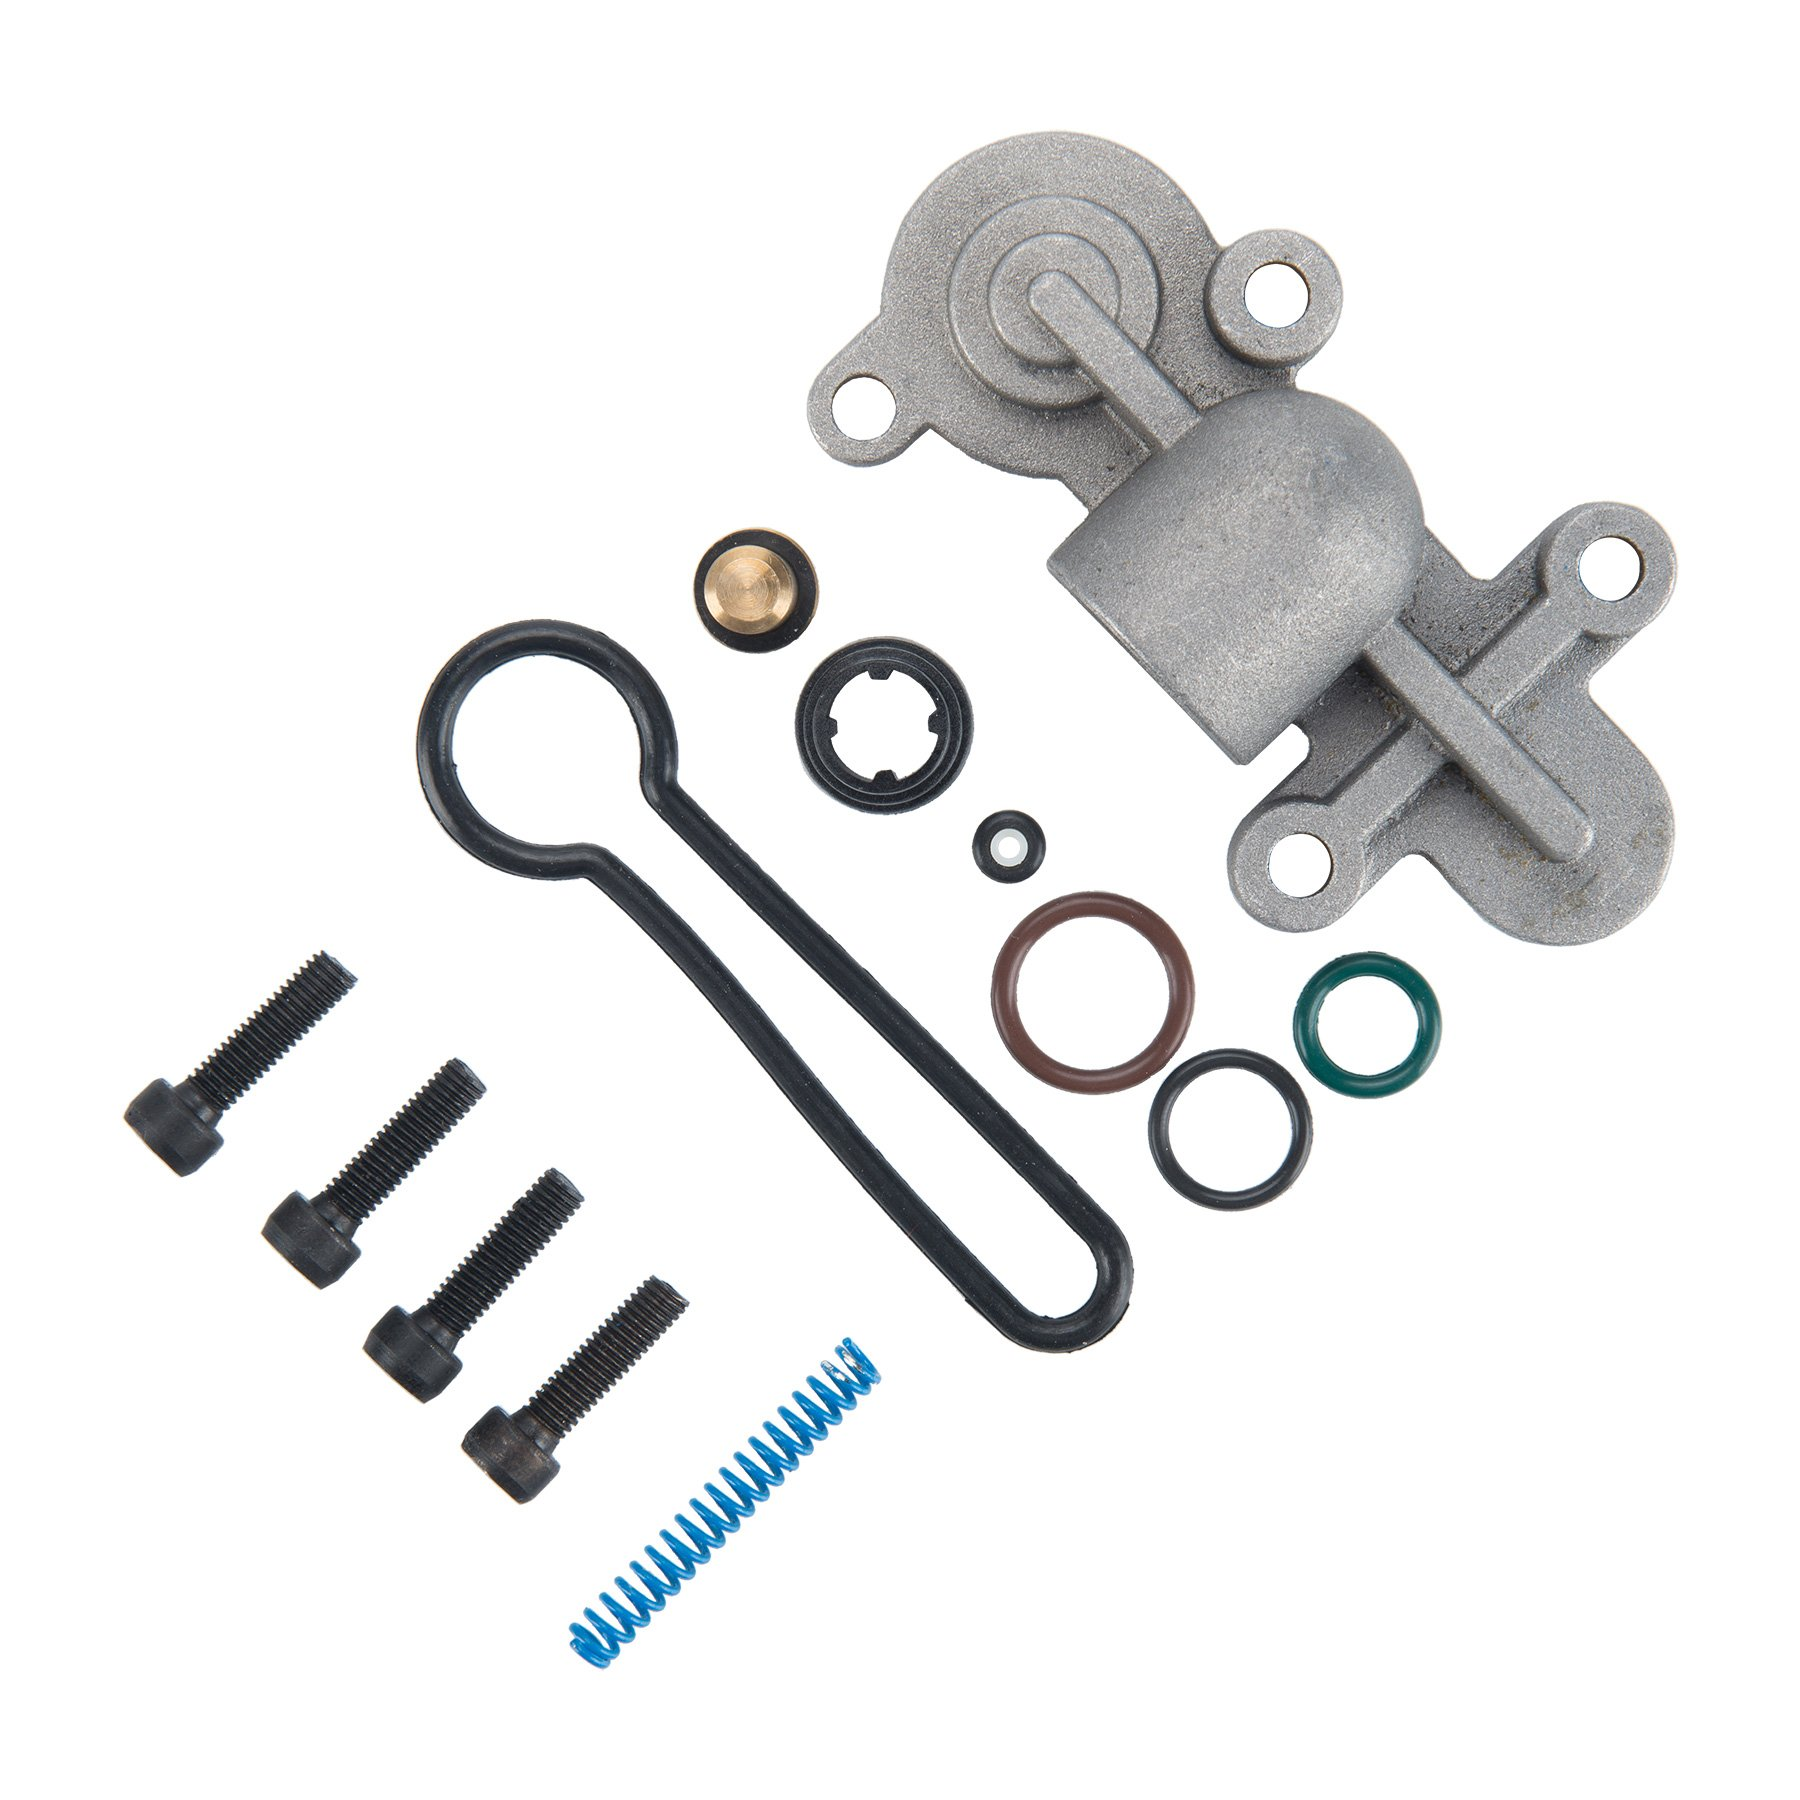 Orion motor tech 6 0 blue spring upgrade kit fuel pressure regulator kit for ford 2003 2007 6 0l powerstroke ford f250 f350 f450 f550 oem 3c3z 9t517 ag